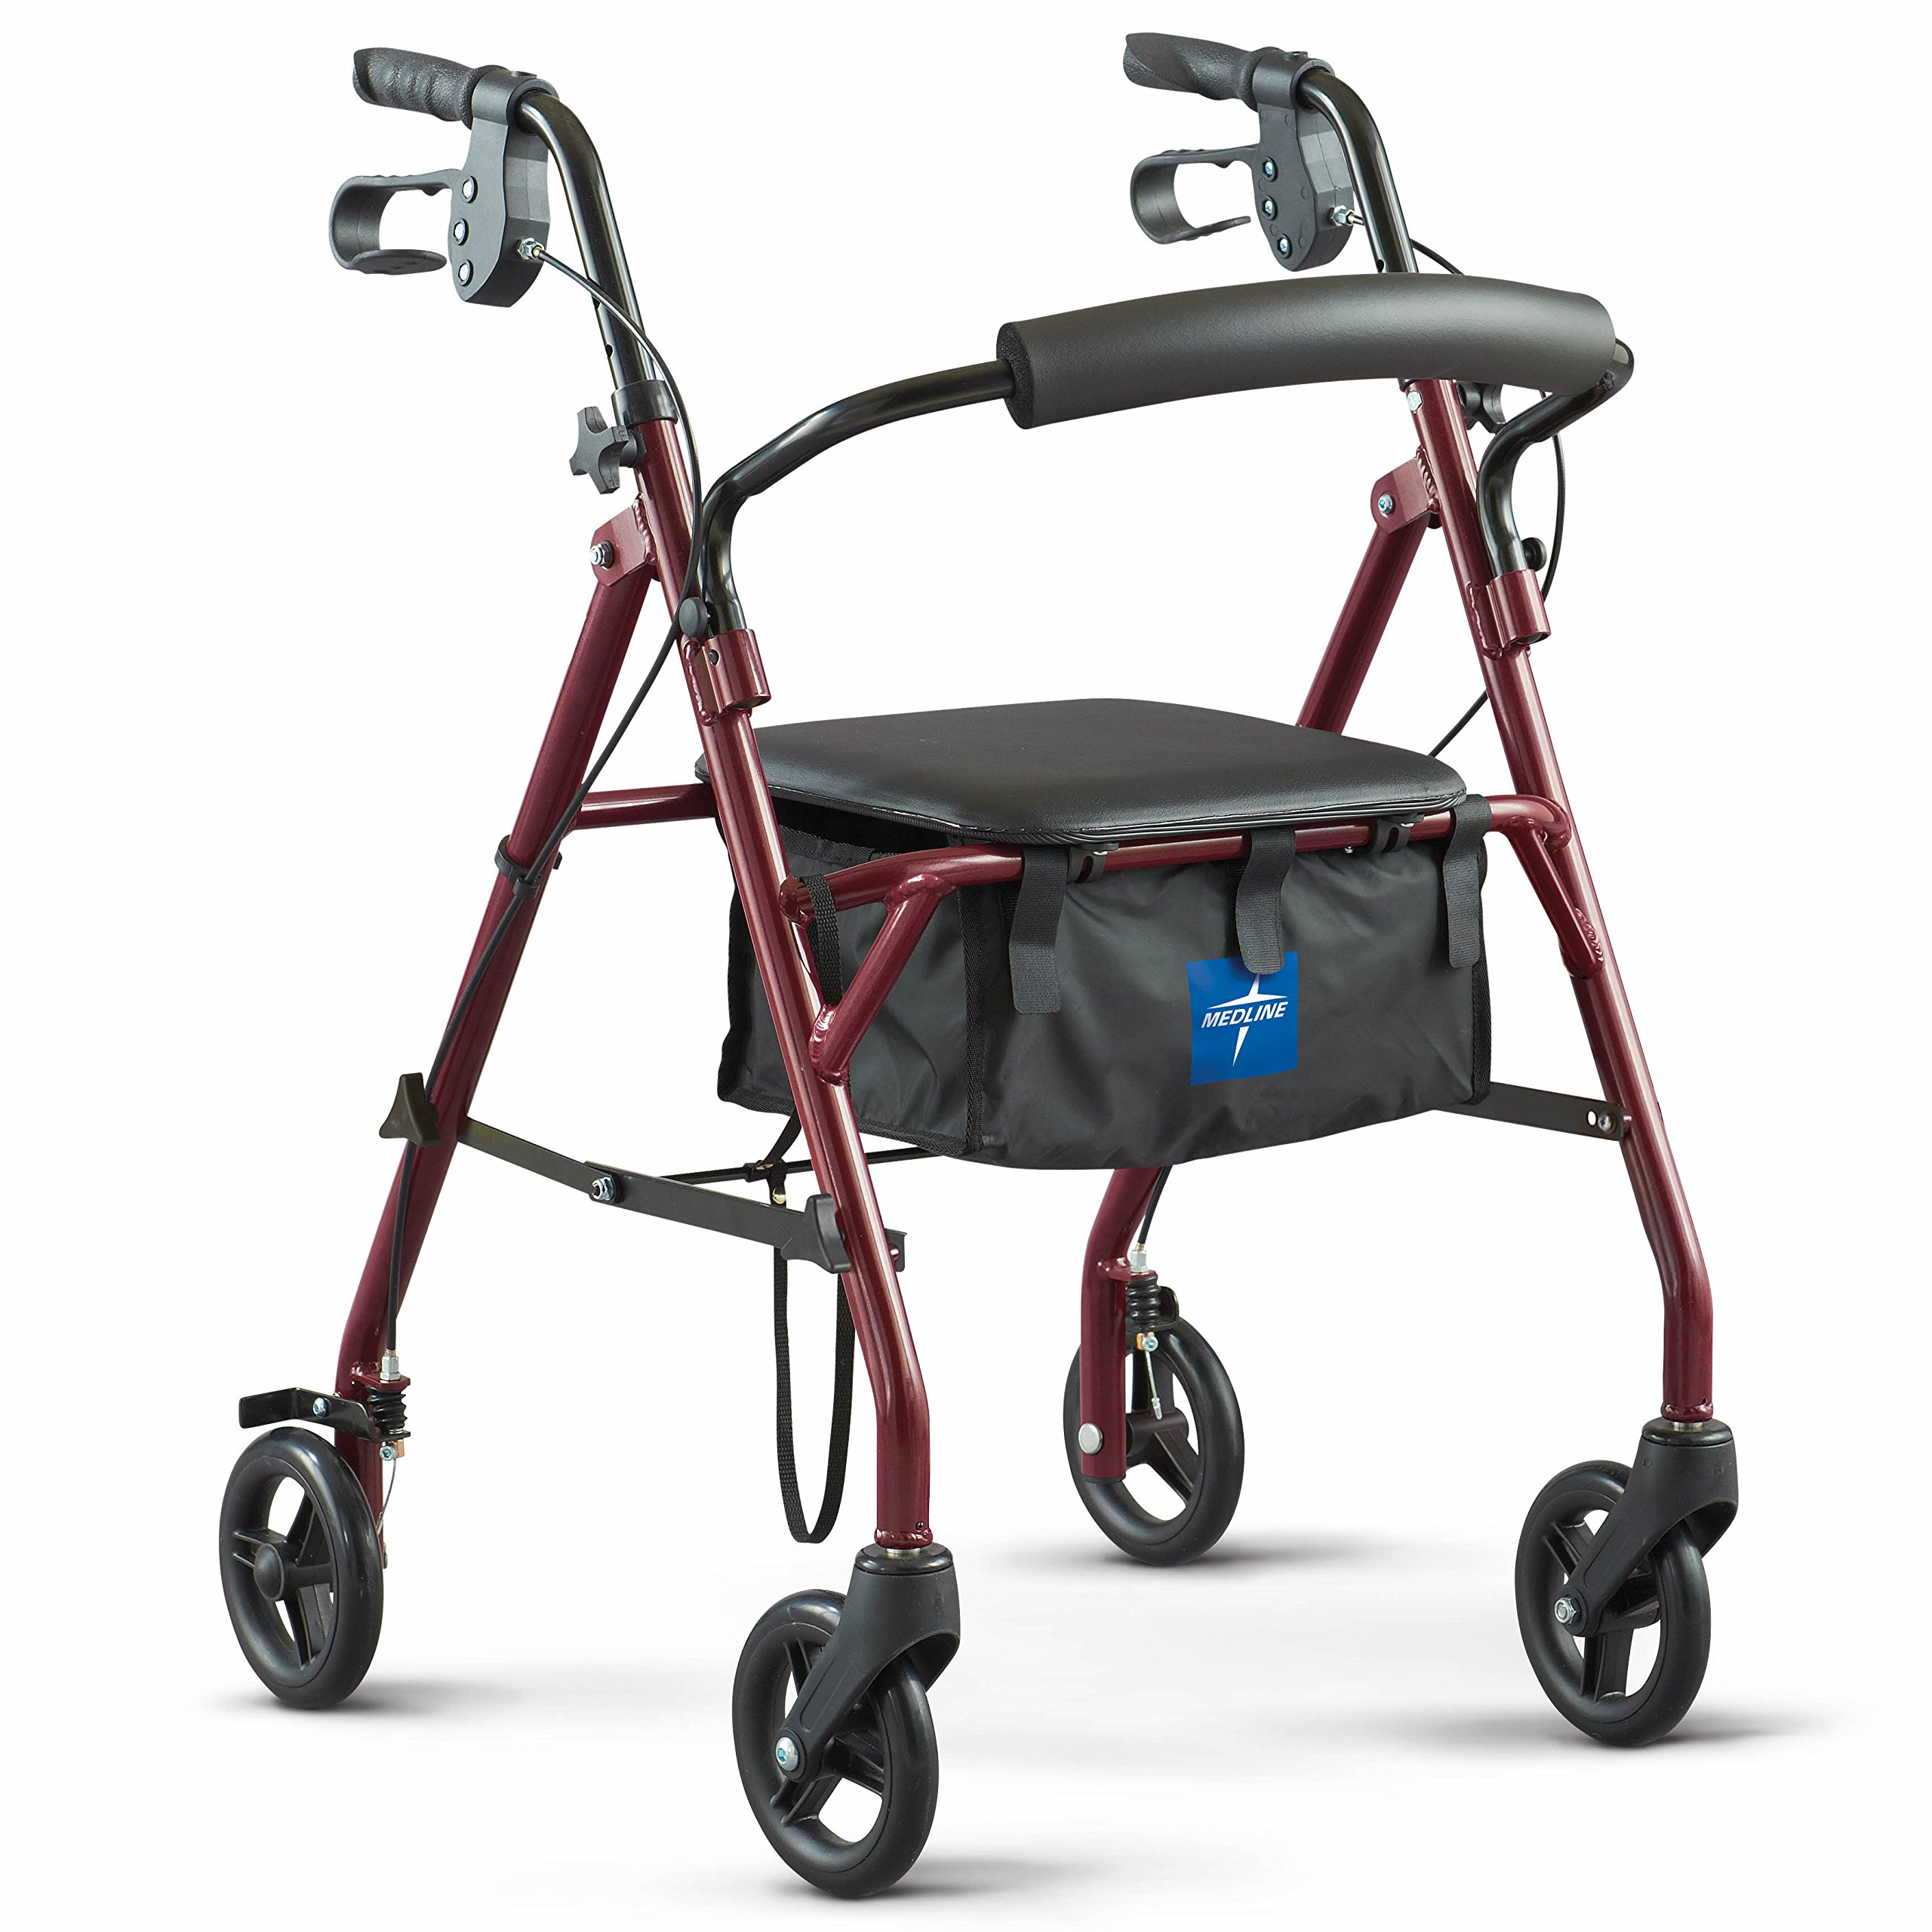 Medline Rollator Walker with Seat, Steel Rolling Walker with 6-inch Wheels Supports up to 350 lbs, Medical Walker, Burgundy by Medline